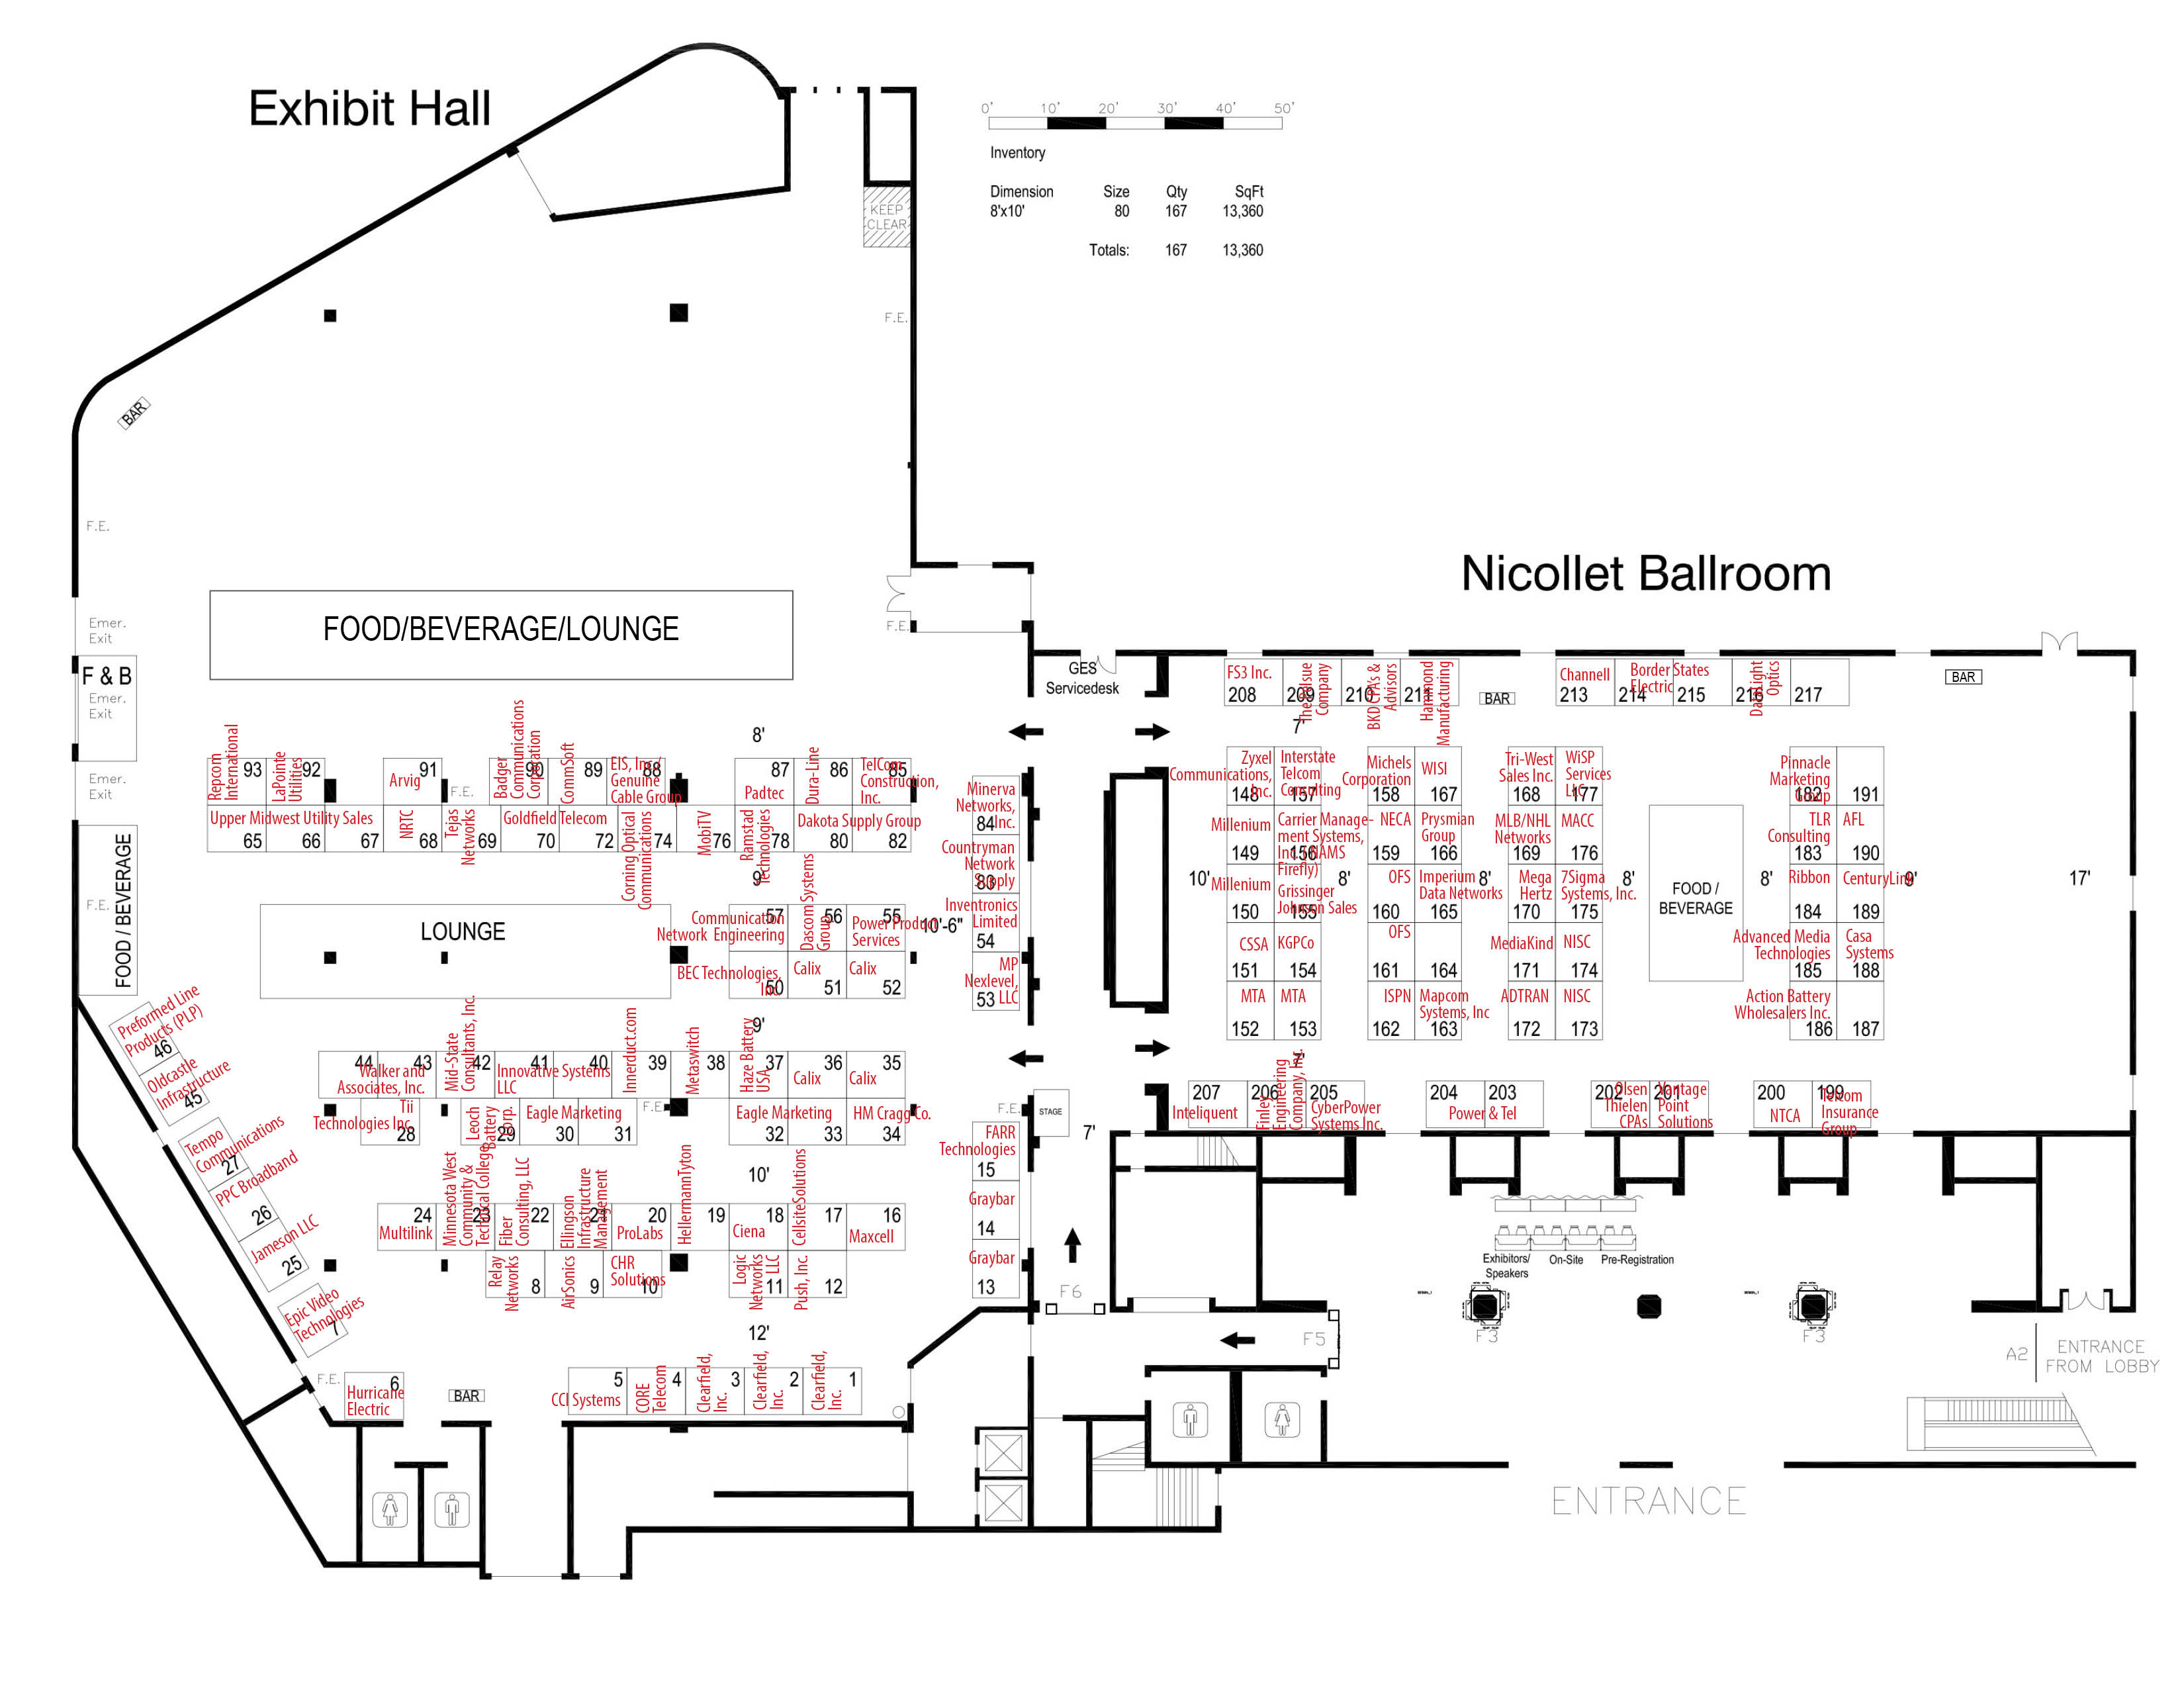 MTA 2020 Convention Exhibitor Floorplan with Assignments